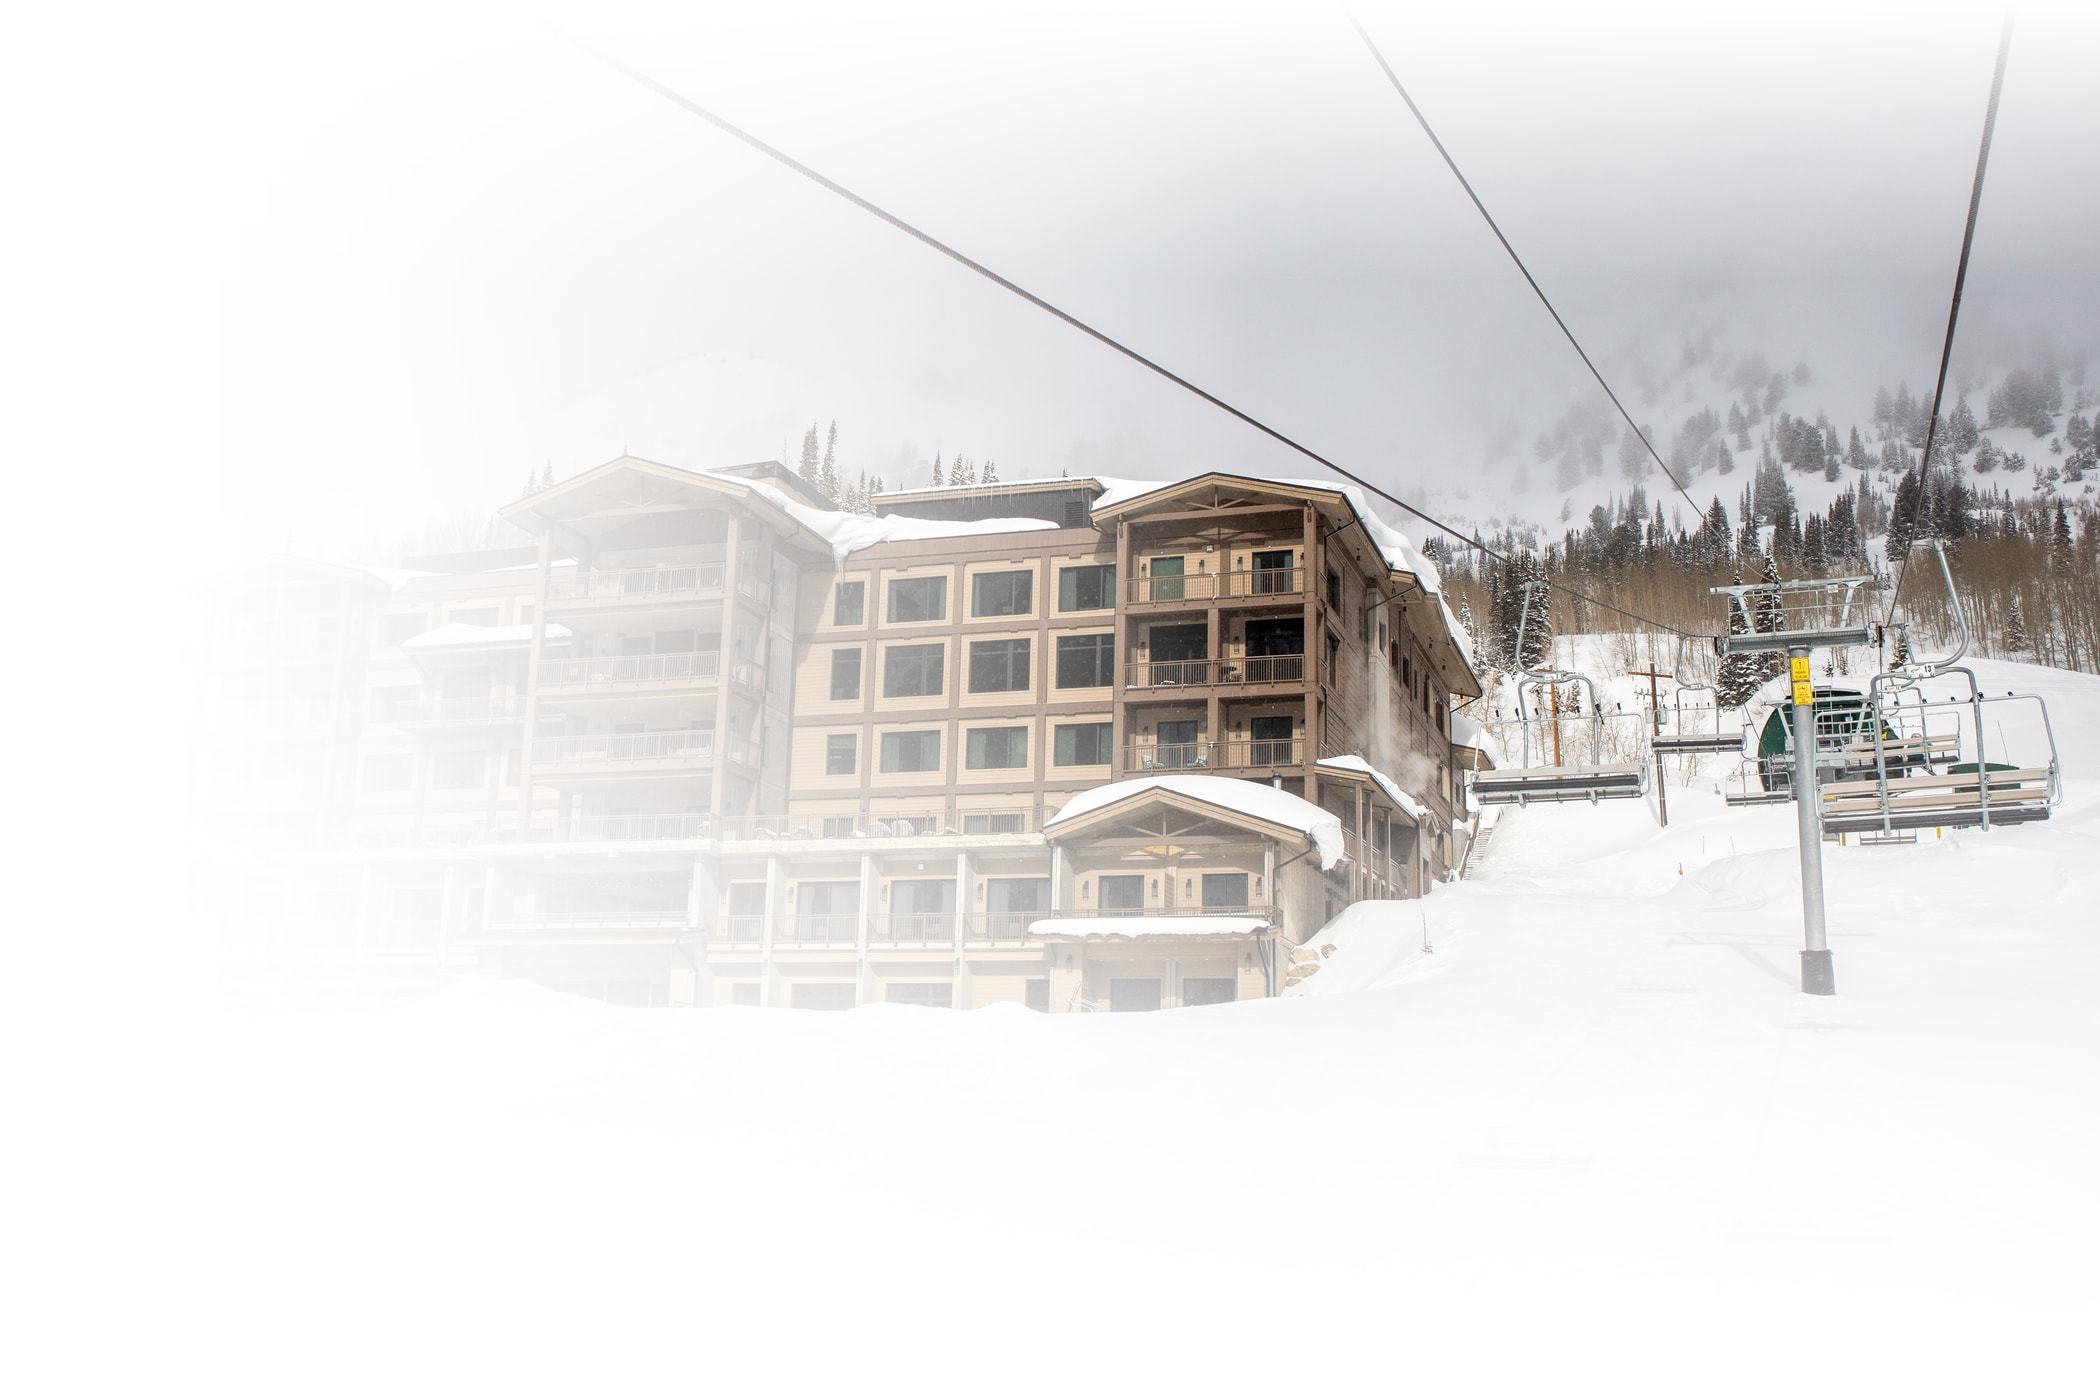 The newly rebuilt Snowpine Lodge and the new Snowpine lift